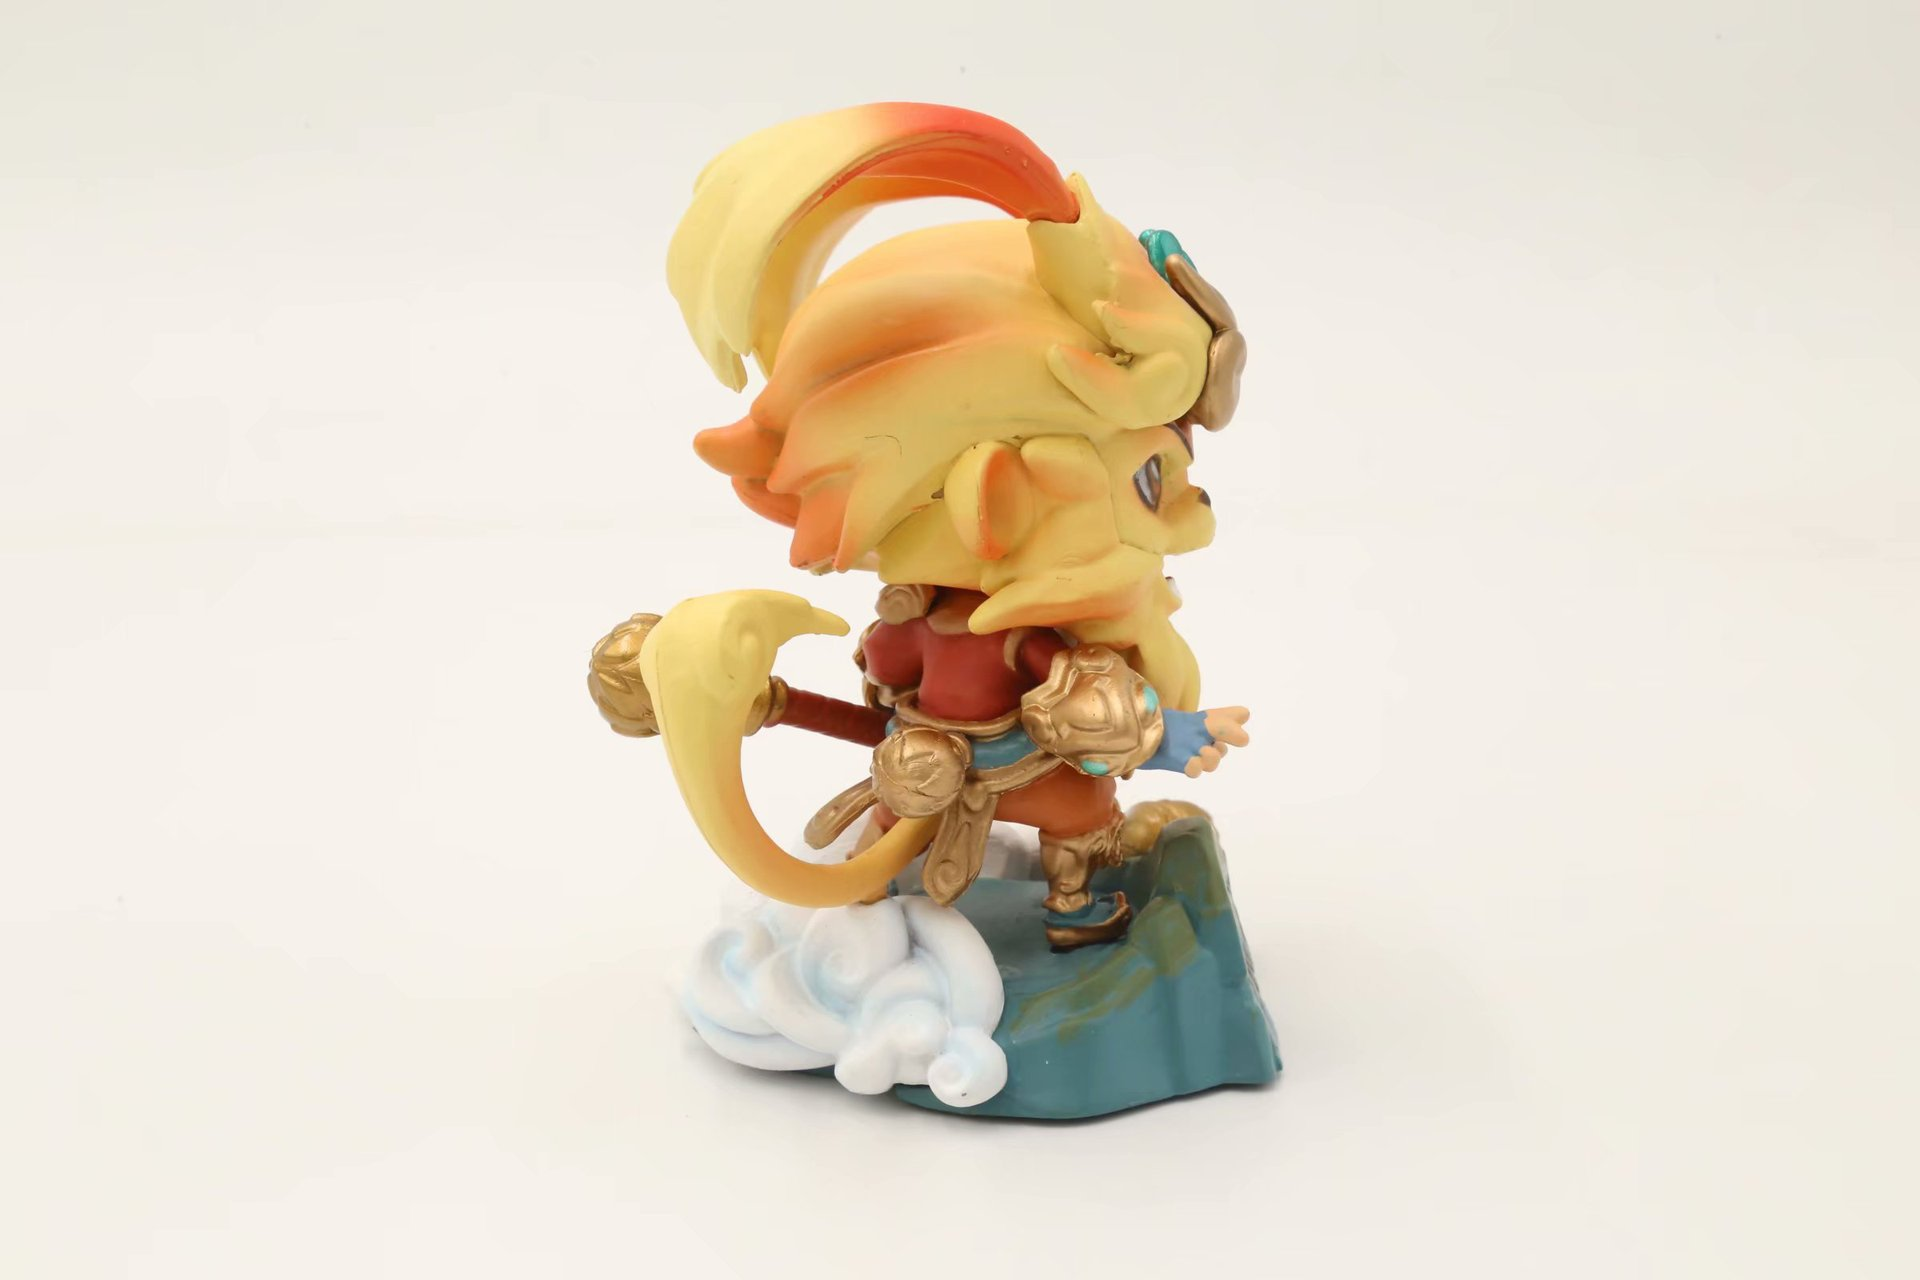 LoL League S7 Year Of The Monkey Limited Edition Sun Wukong Monkey King Boxed Garage Kit